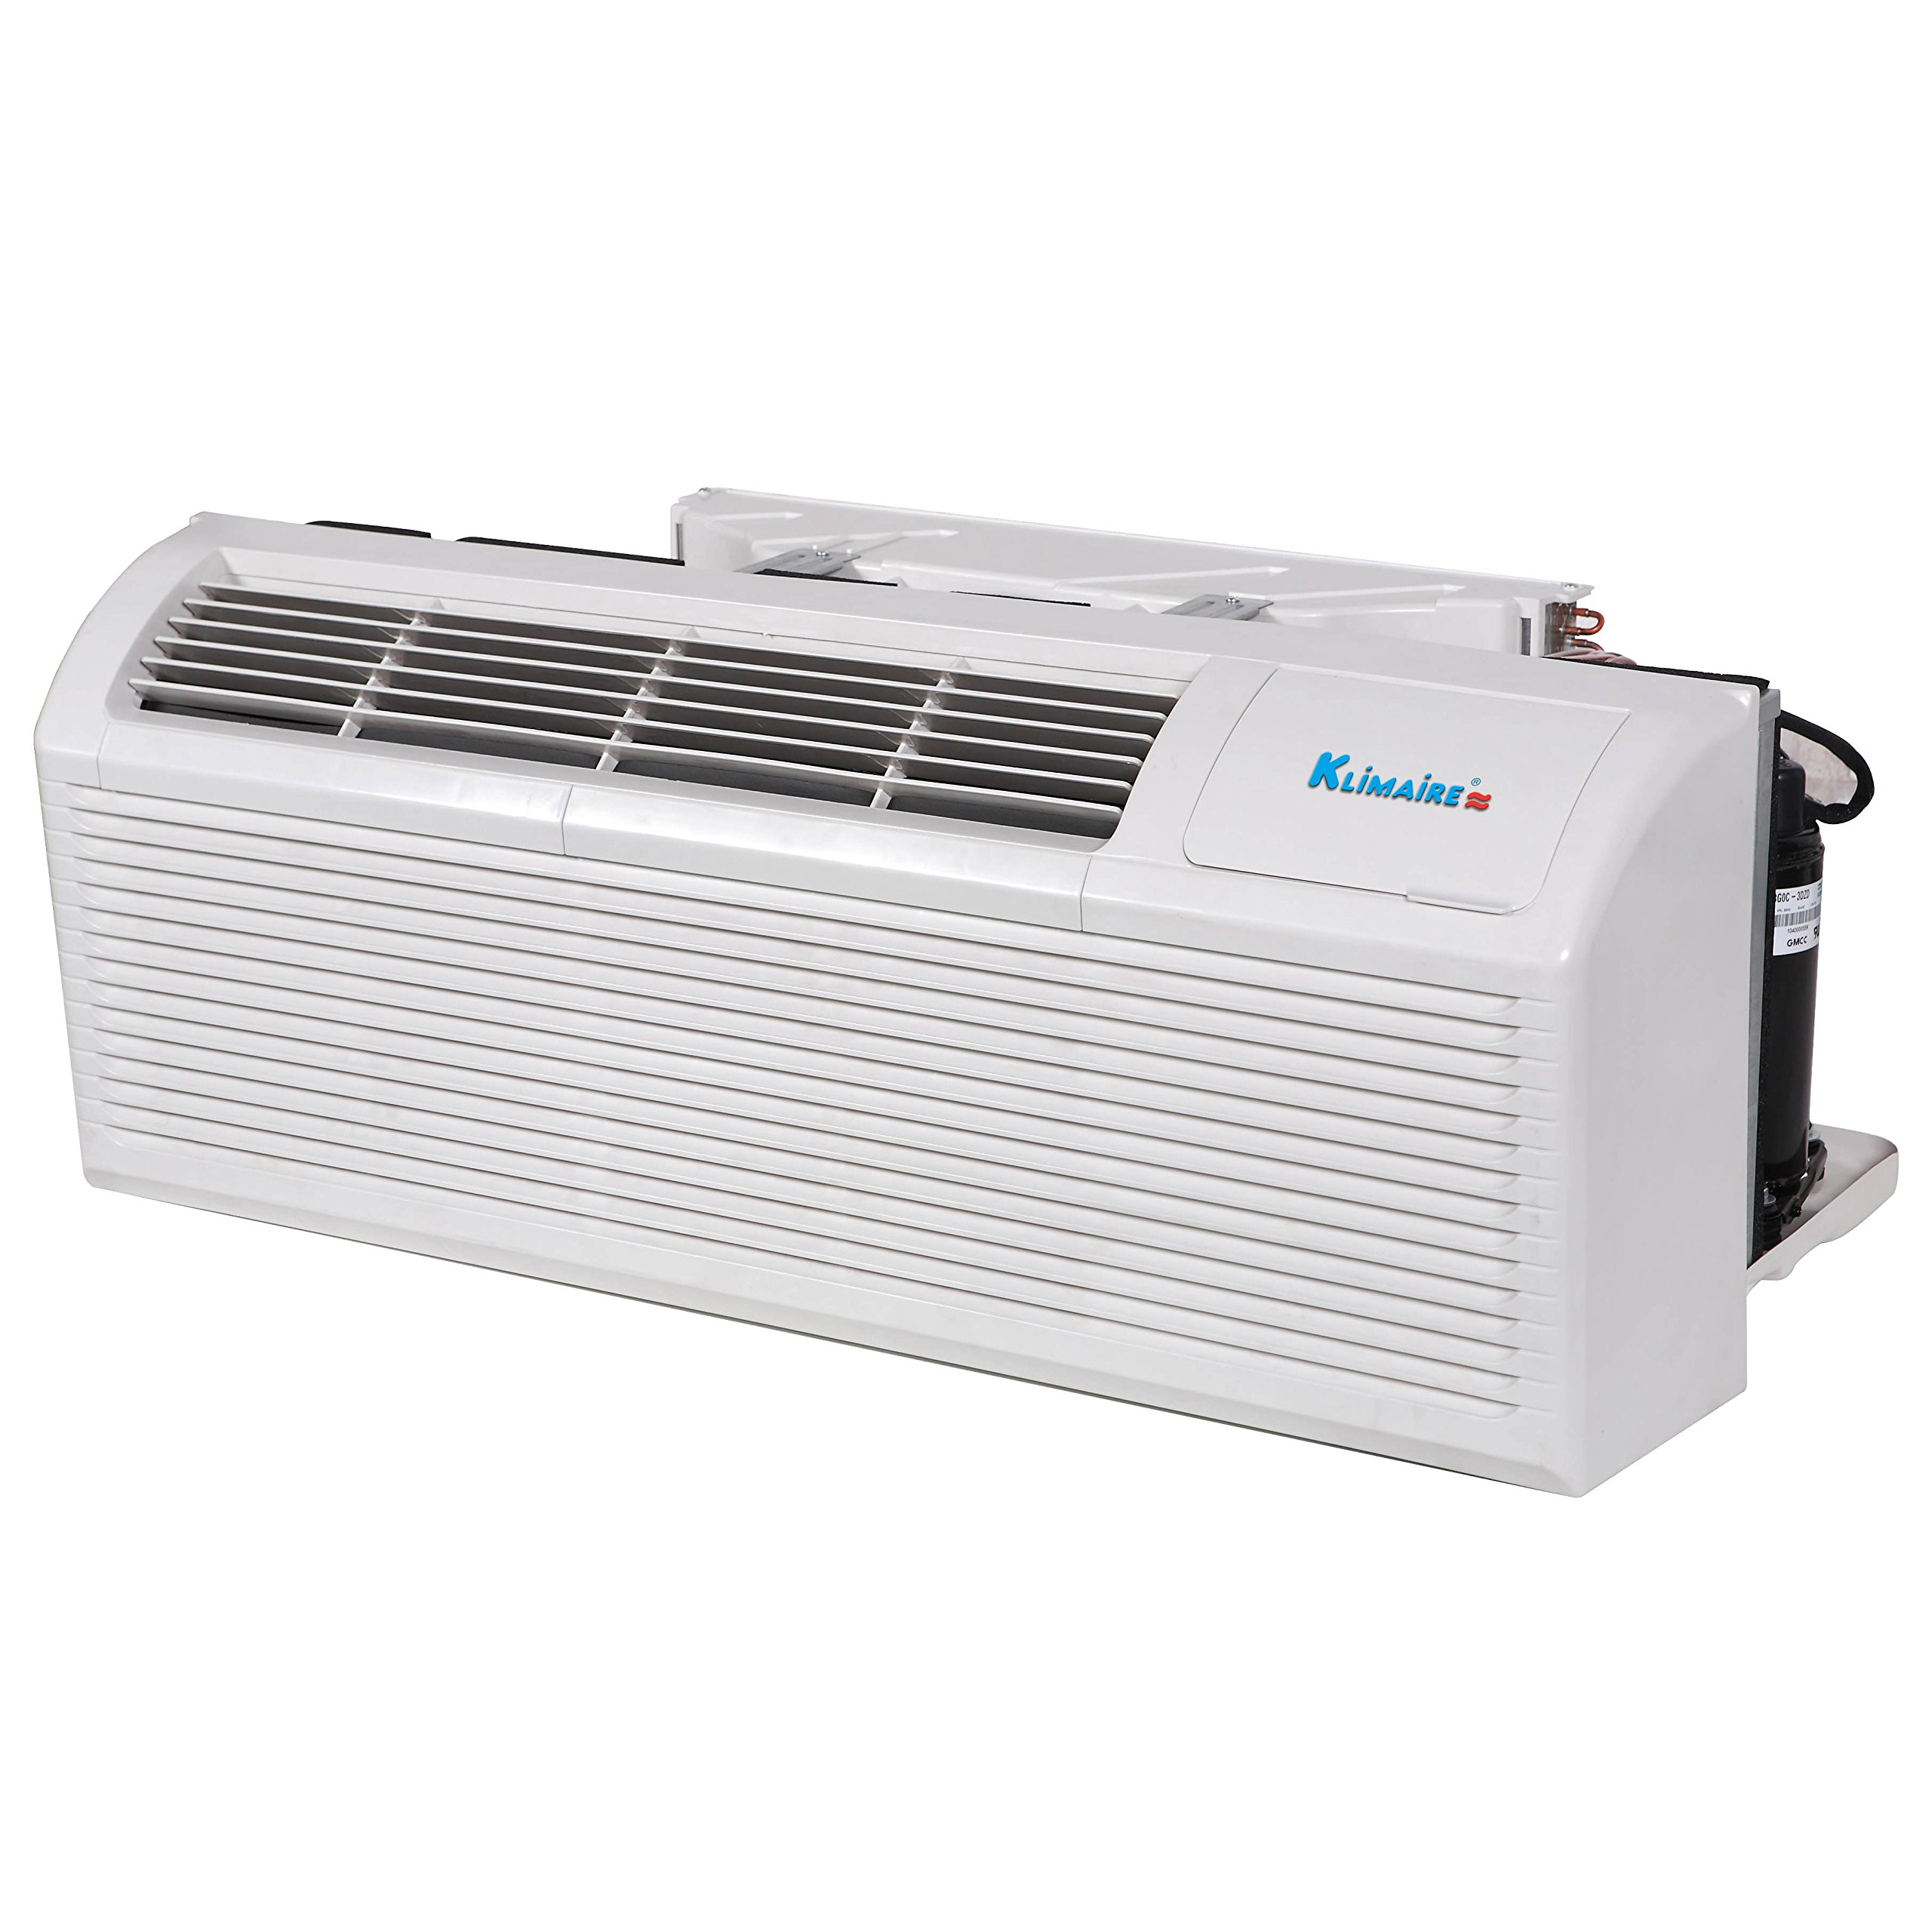 9000 BTU KLIMAIRE 11.3 EER PTAC Air Conditioner with 3kW Electrical Heater